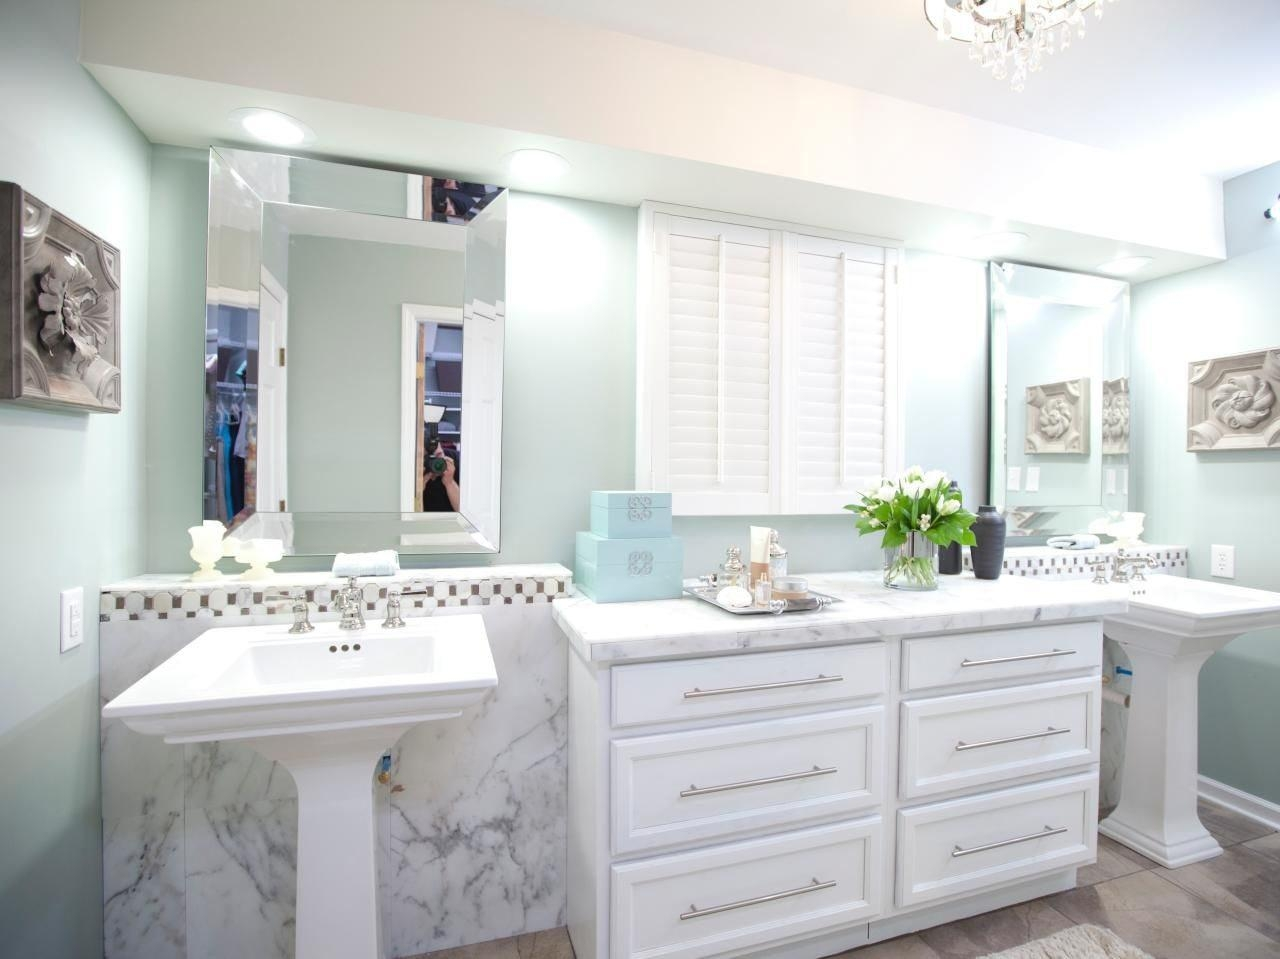 Wonderful Bathroom With Walk In Shower And Ornate Wooden Mirror Regarding Ornate Bathroom Mirror (View 20 of 20)